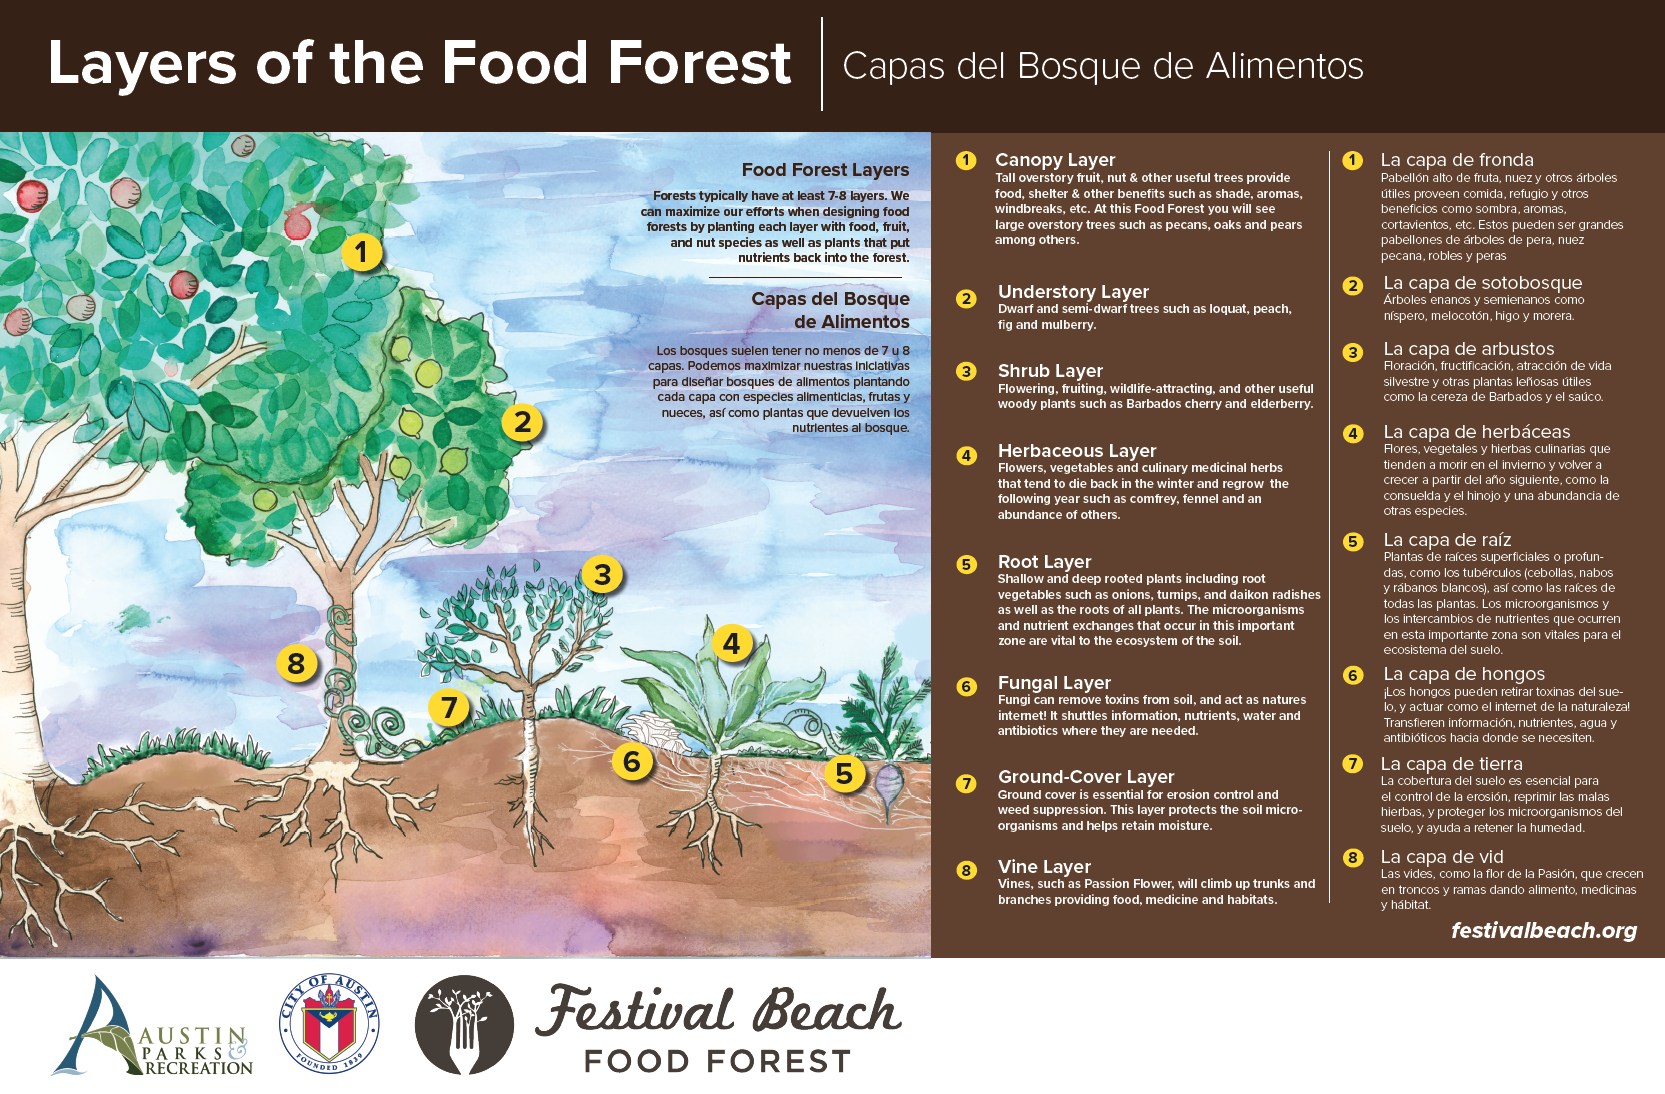 Layers of the Food Forest